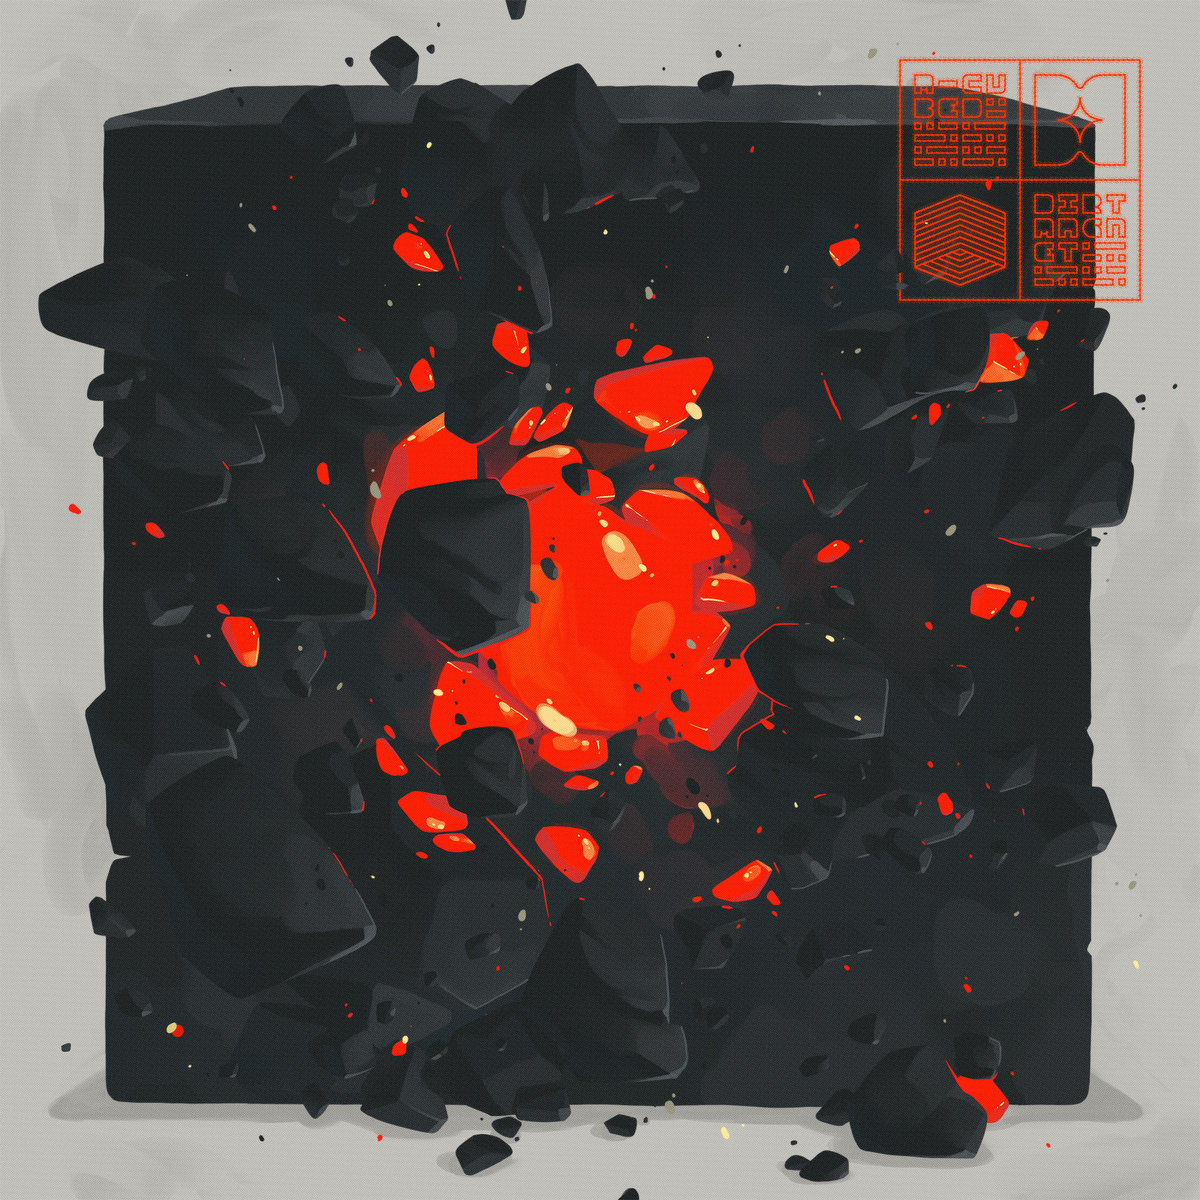 Album cover is a dark block blowing open with flying chunks of the block, revealing a lit up, reddish, molten core